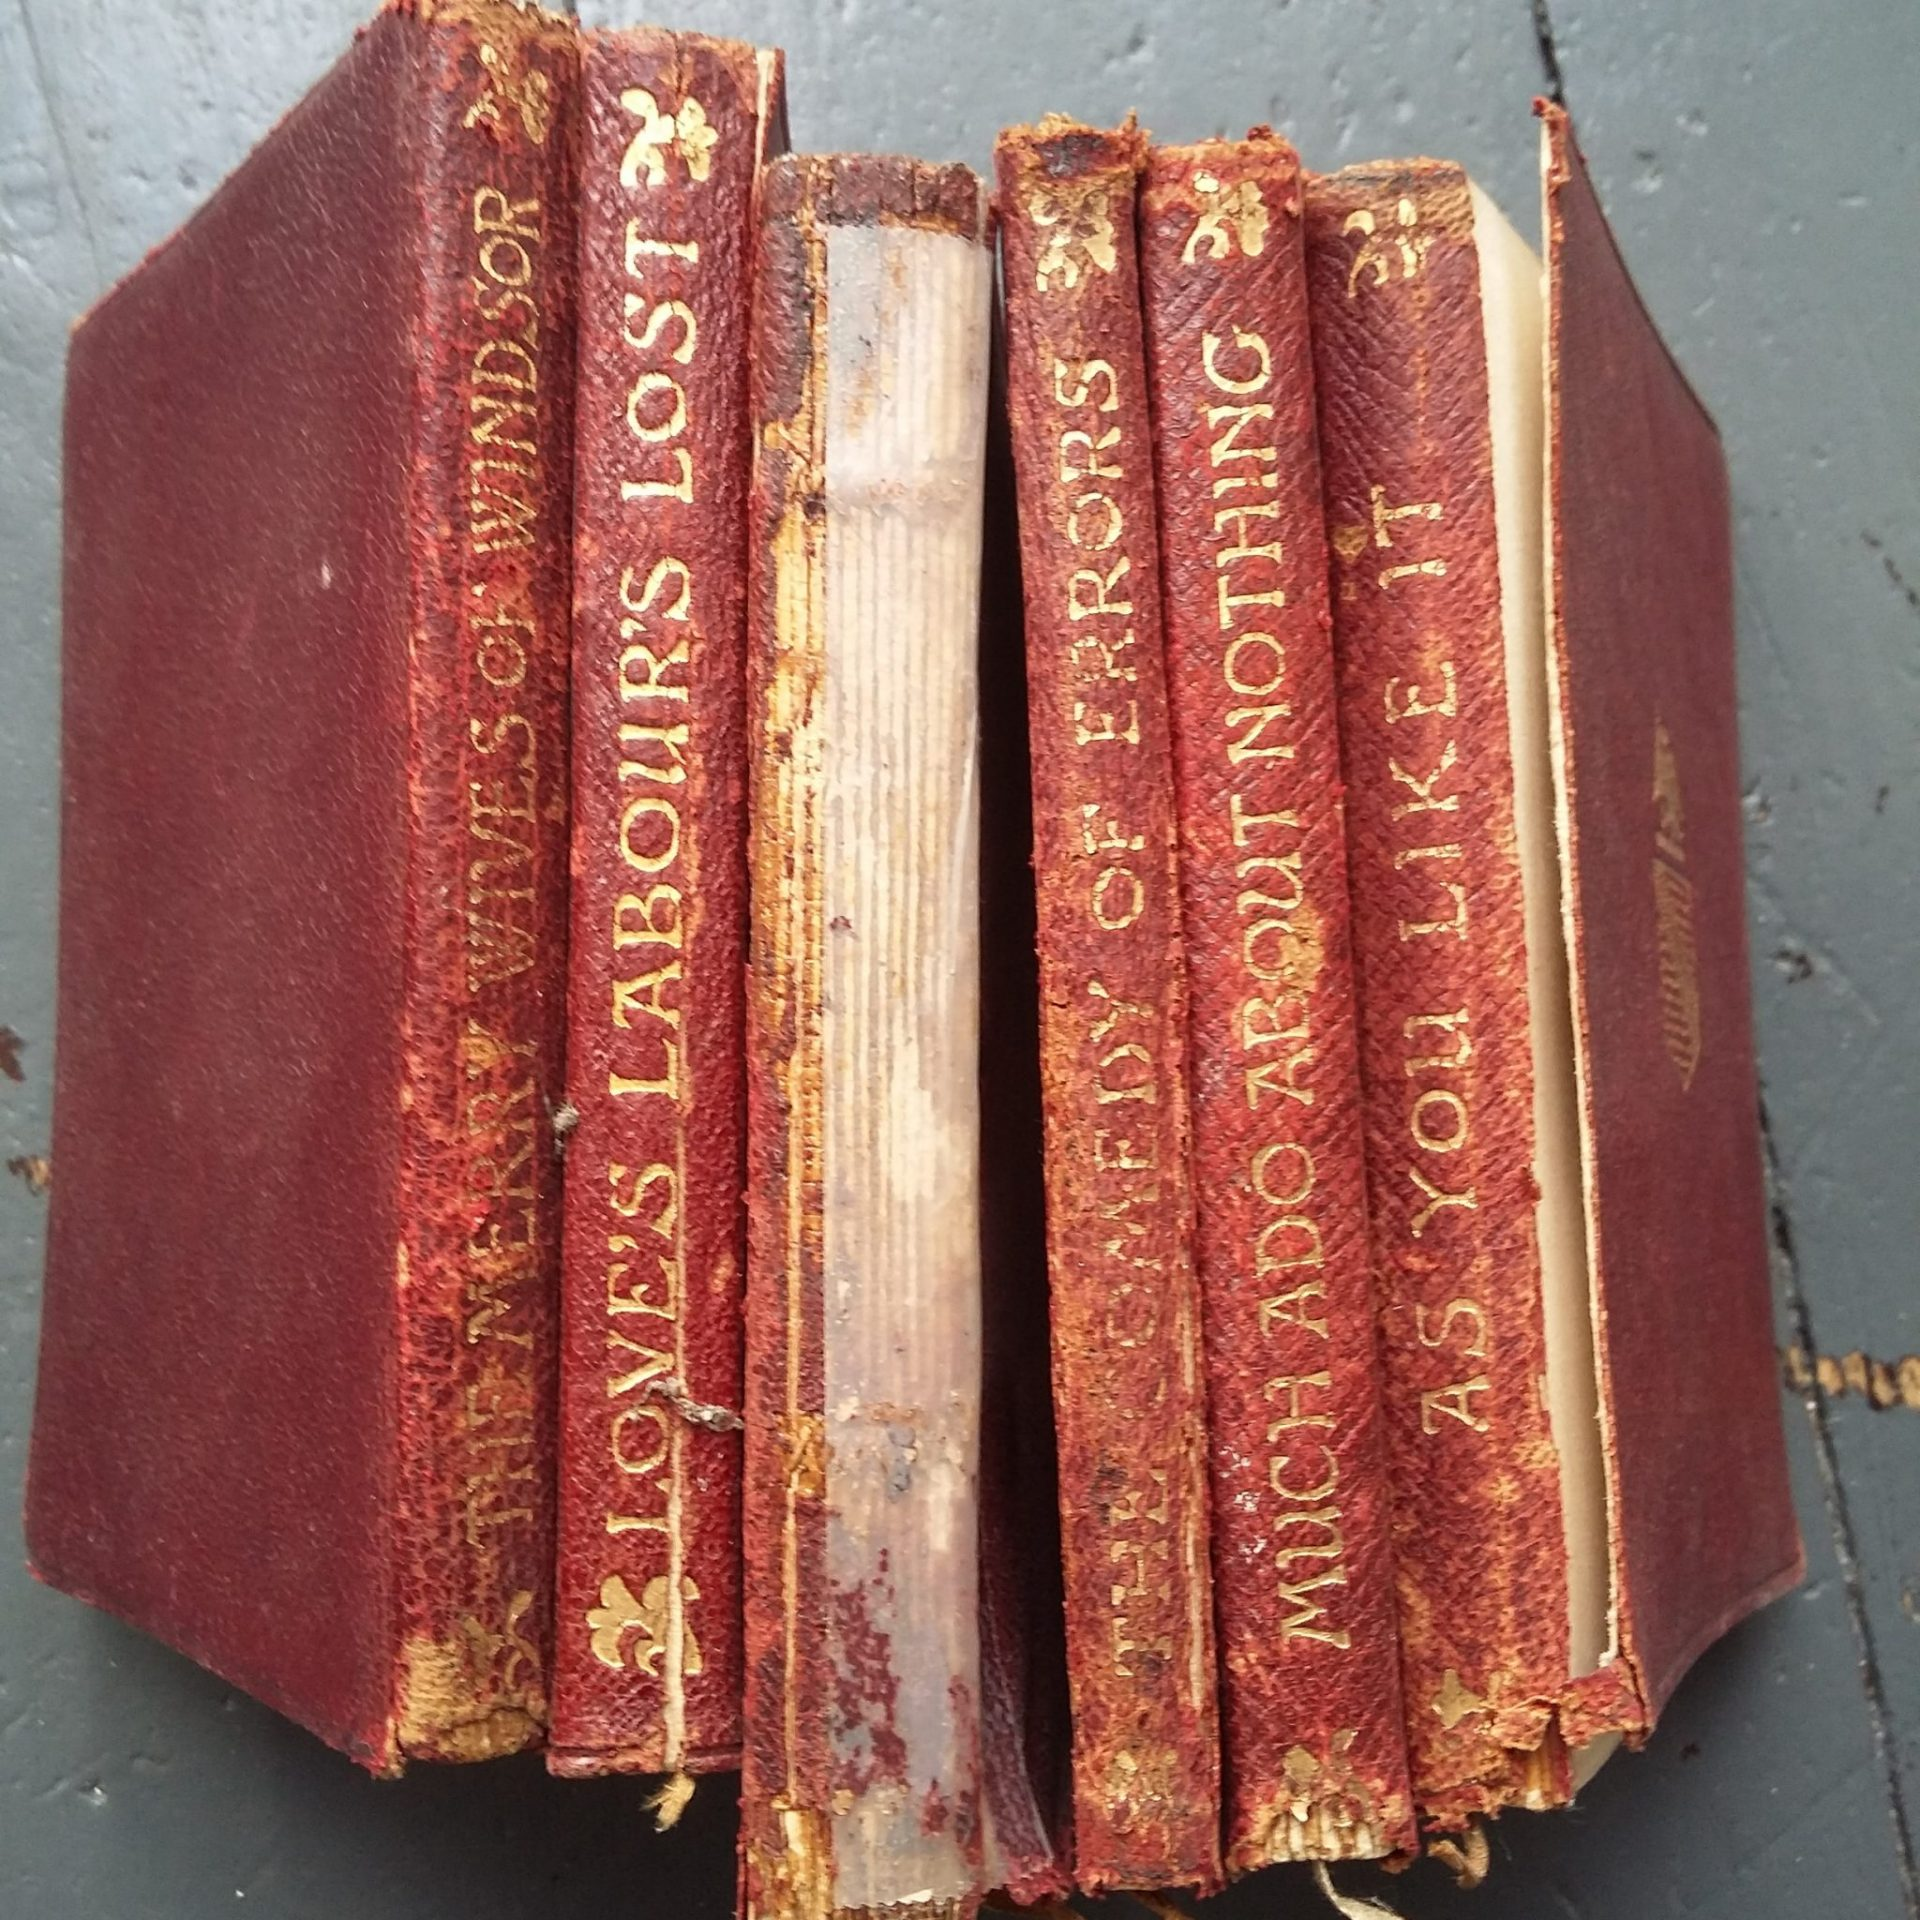 Books in various stages of disrepair